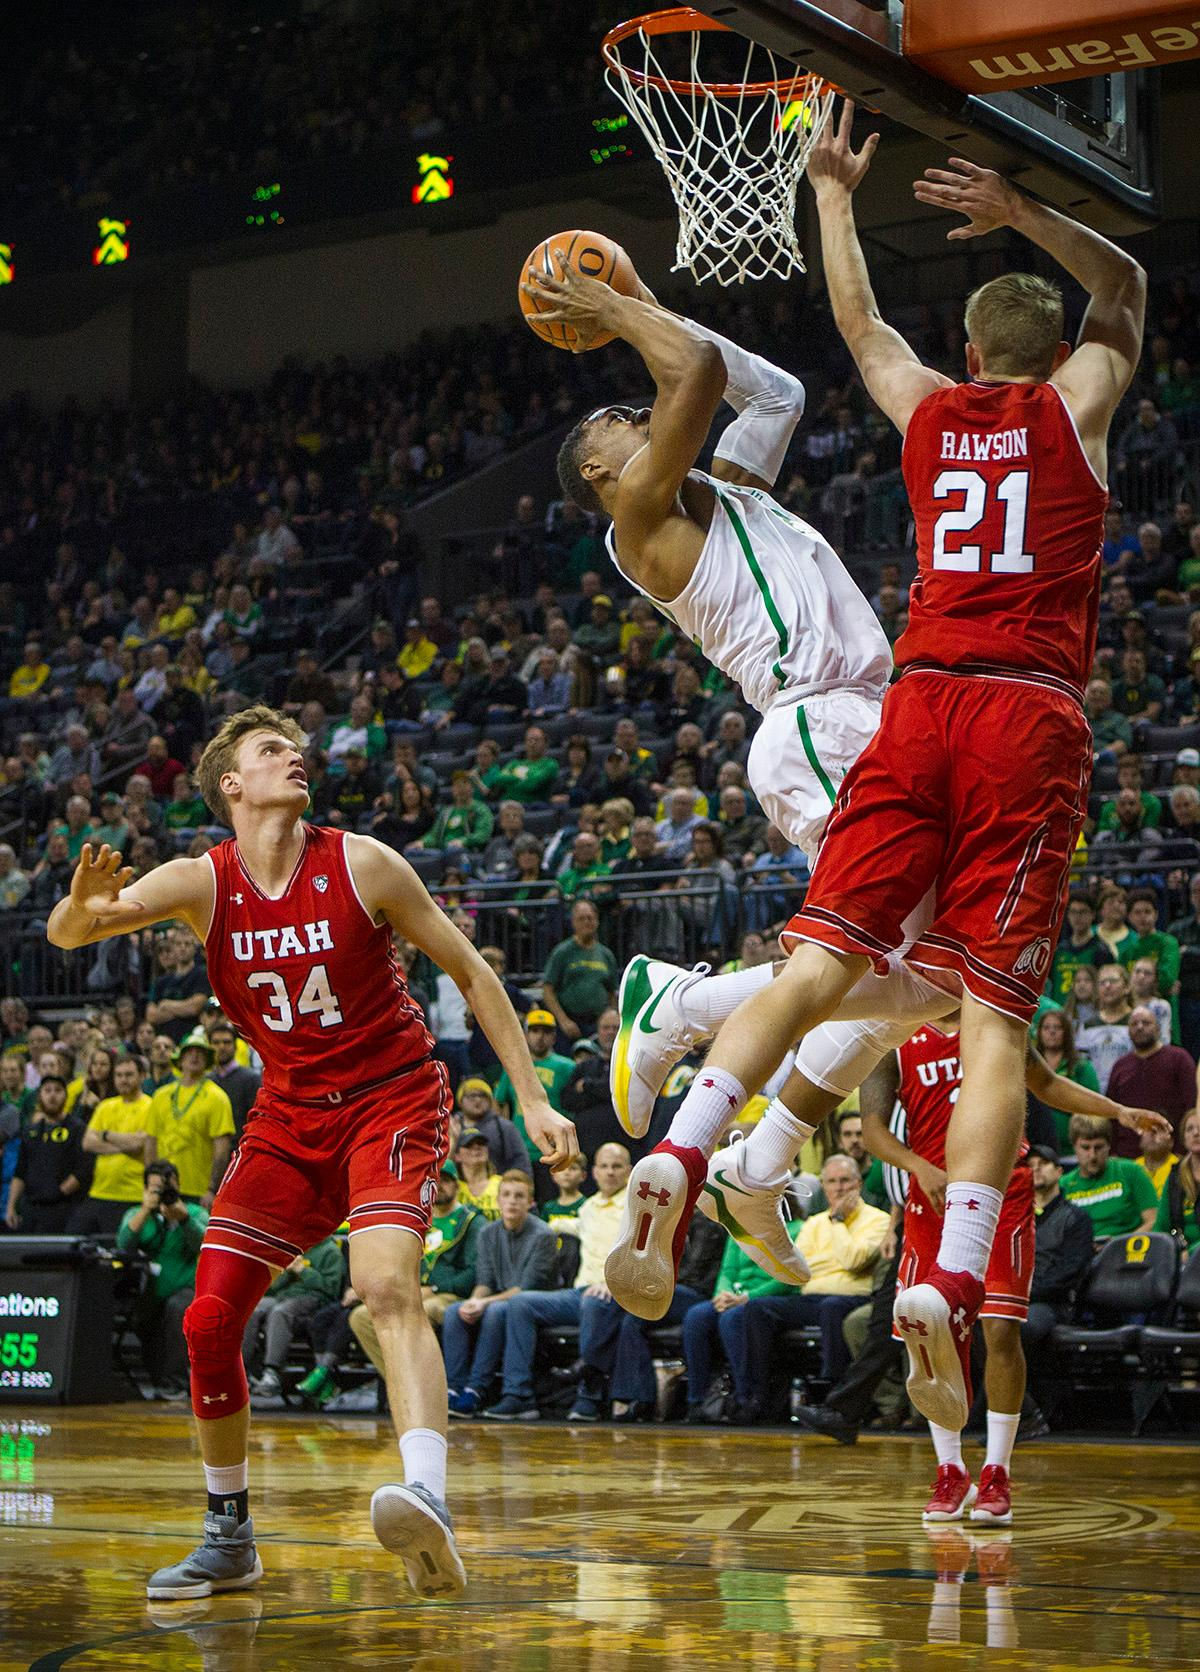 Oregon Ducks Elijah Brown (#5) aims for the basket. The Utah Utes defeated the Oregon Ducks 66-56 on Friday night at Matthew Knight Arena. This is the first Pac-12 conference game loss at home for the Ducks since January of 2015. This also ended the five home game winning streak for the Ducks against the Utah Utes. Photo by Rhianna Gelhart, Oregon News Lab